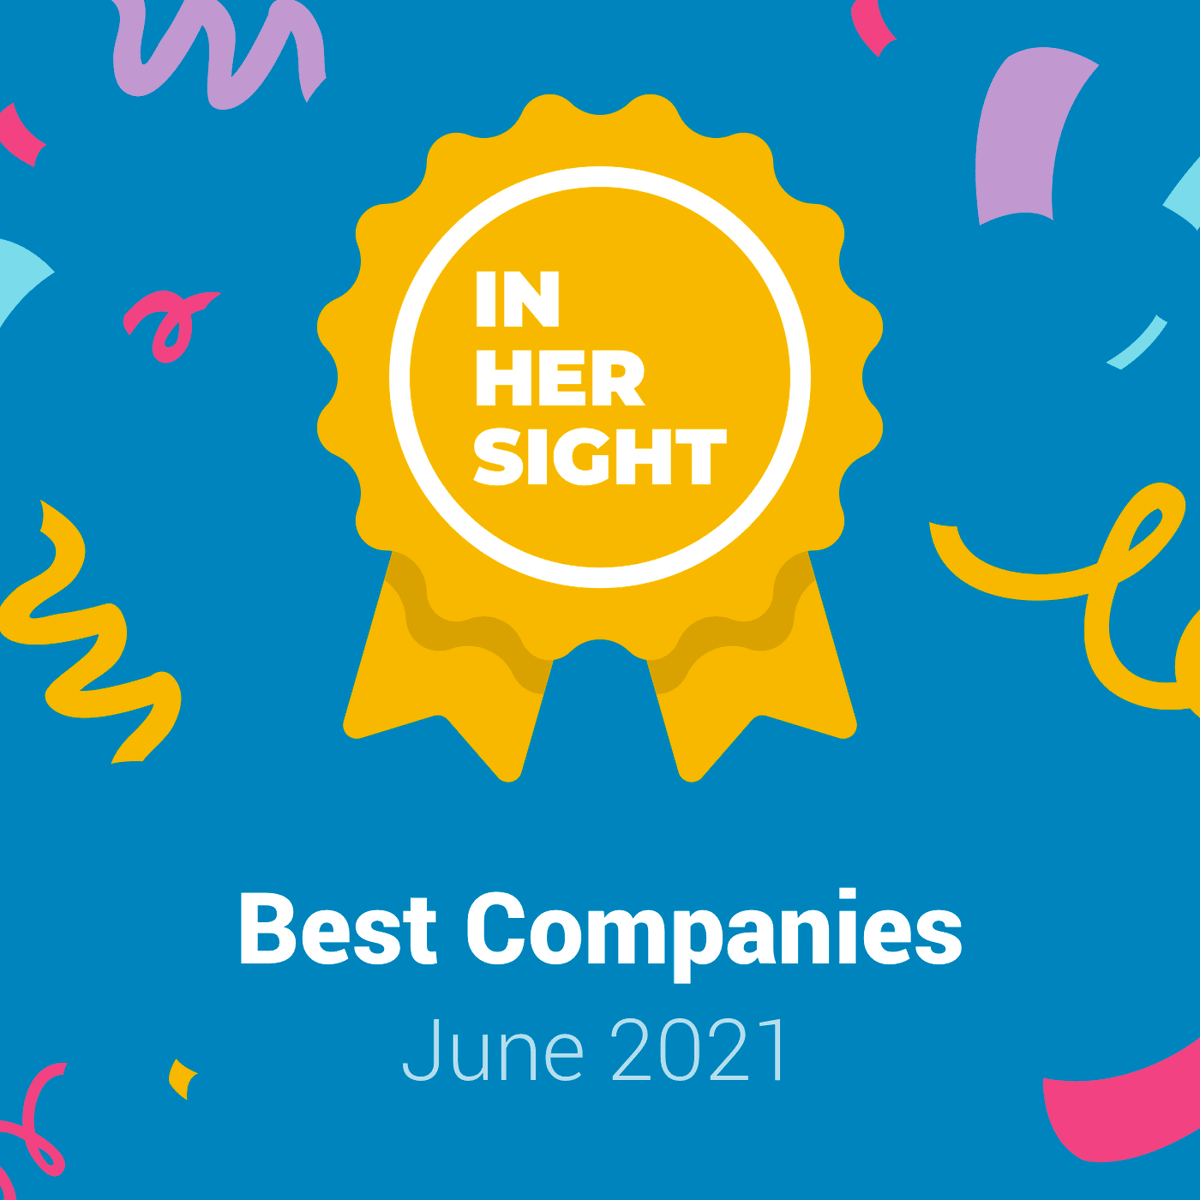 The TMX Finance® Family of Companies continues to be ranked in the top 10 for several Best Companies categories by @InHerSight, including Sponsorship or Mentorship Program, Learning Opportunities, & for the People You Work With. Check out all our rankings: https://t.co/YhfYYizTML https://t.co/encR0AG0UJ